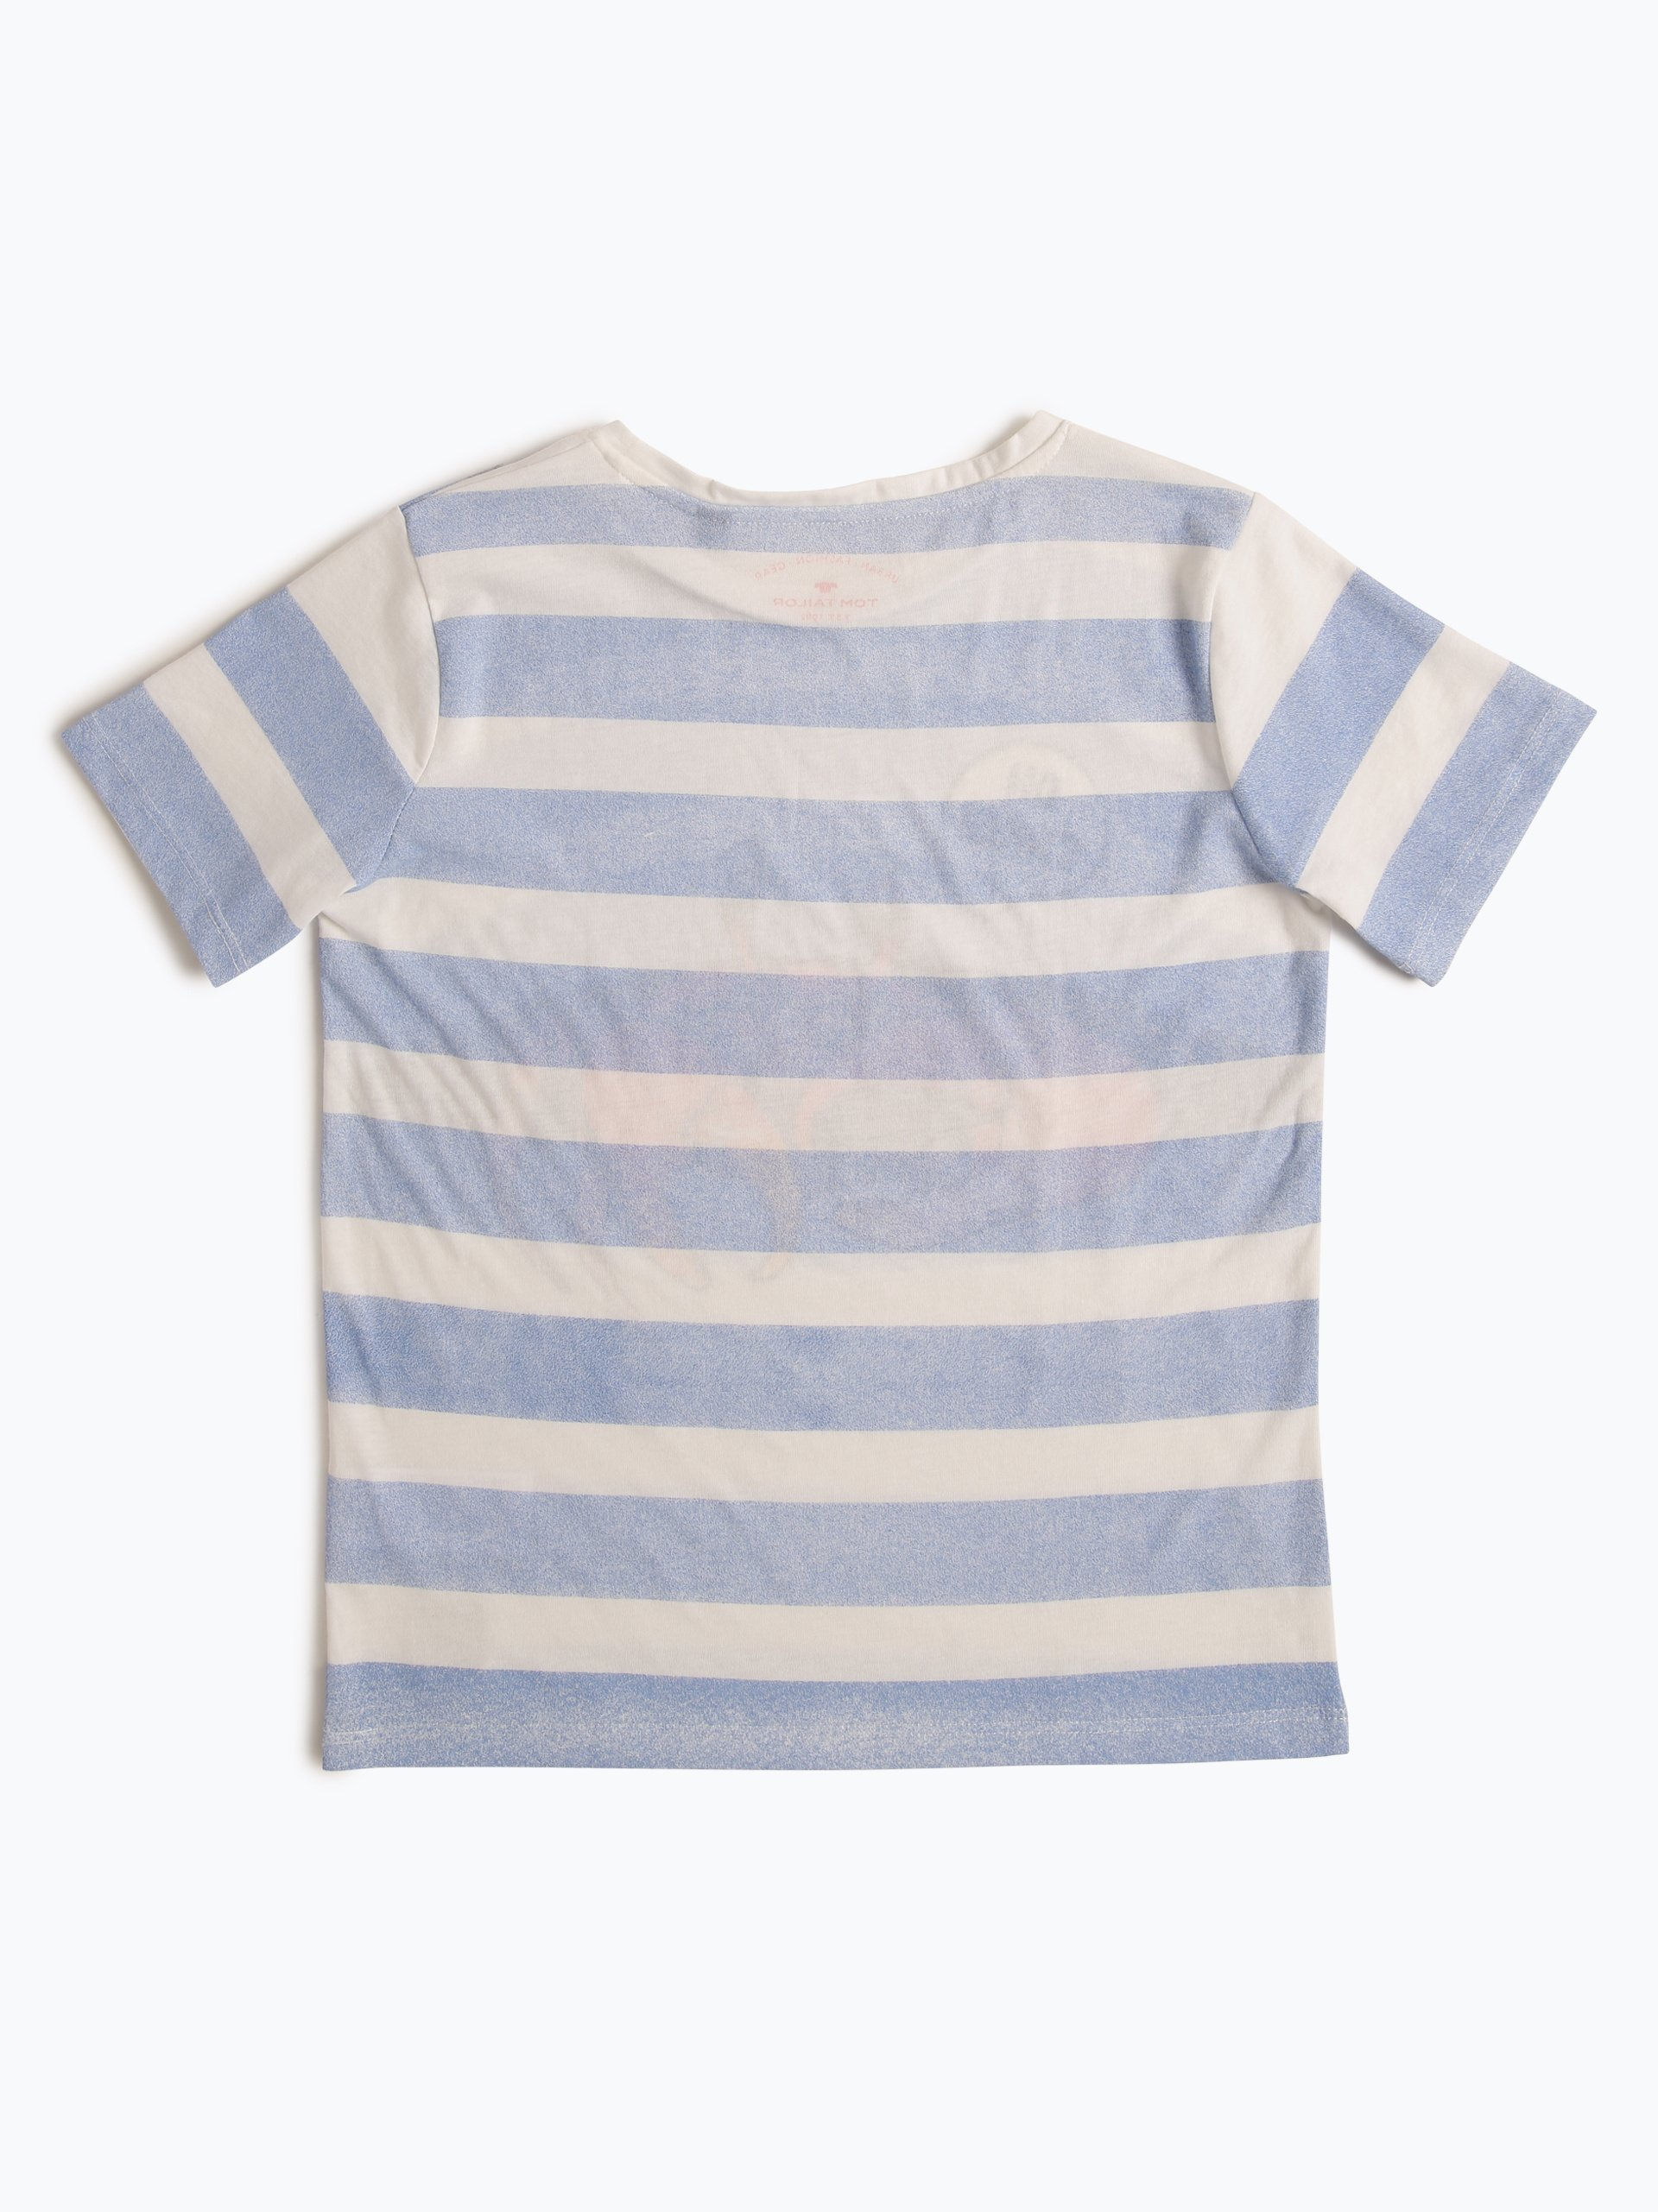 Tom Tailor Jungen T-Shirt